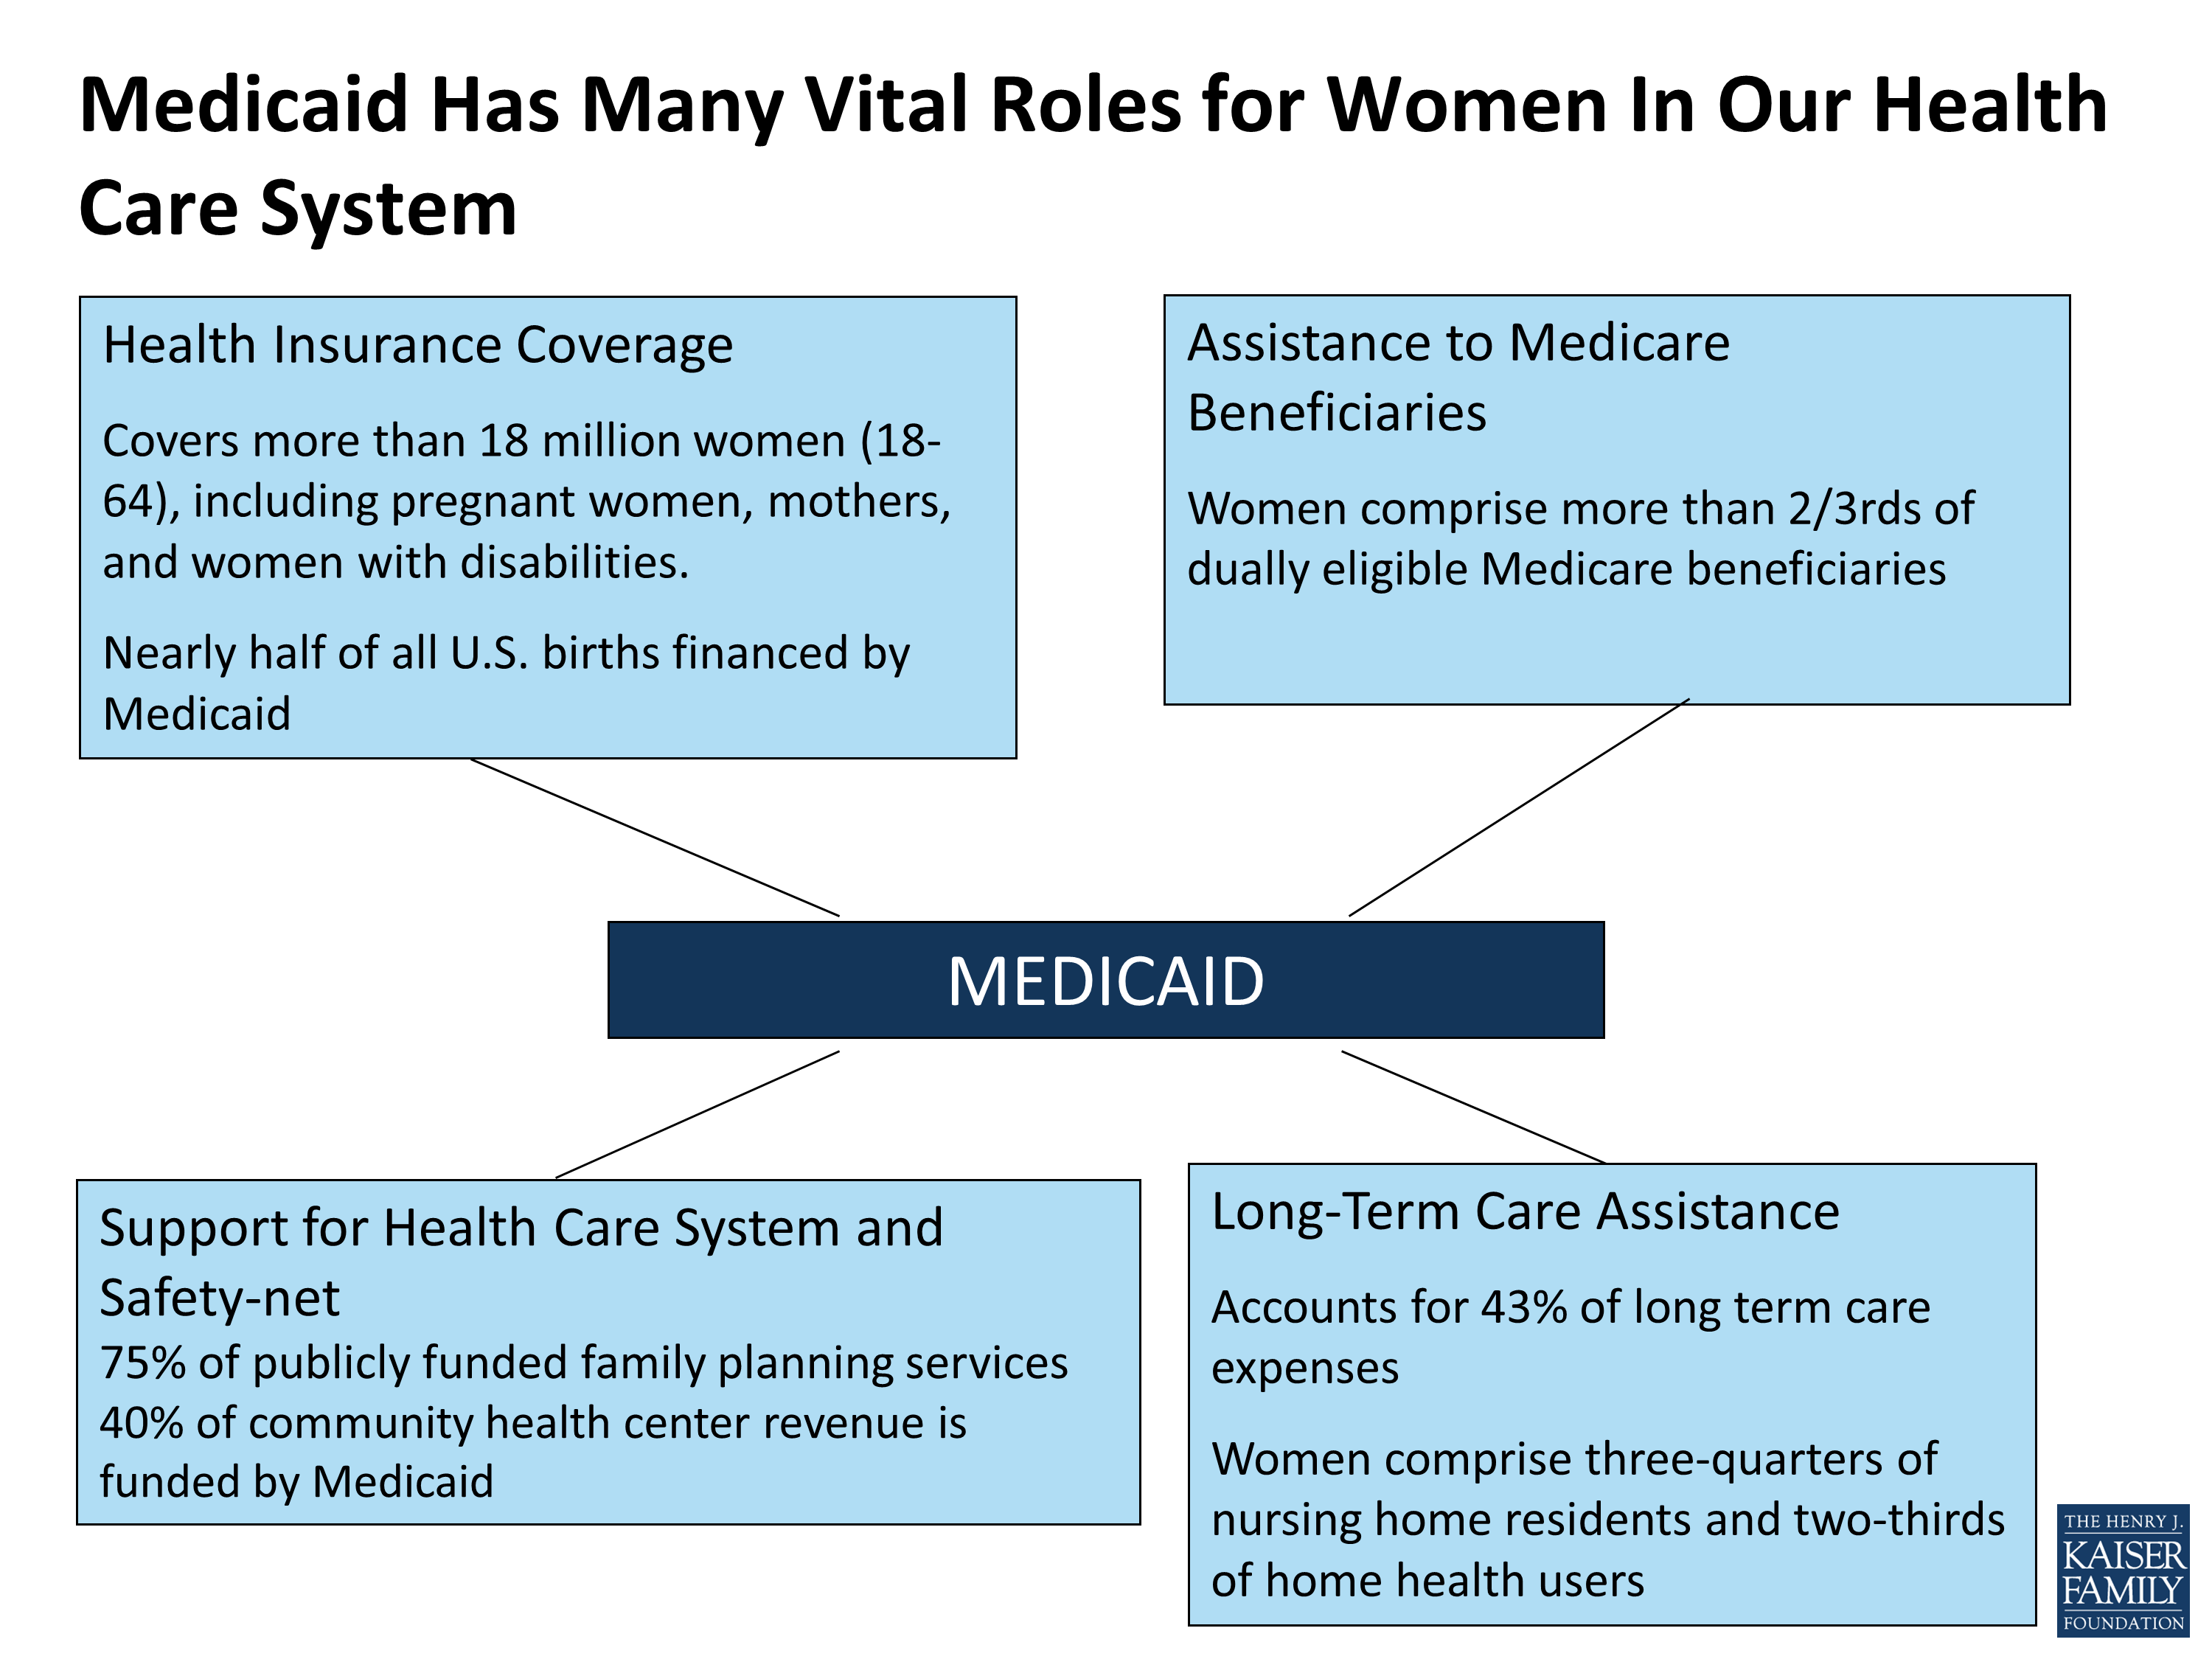 Medicaid Has Many Vital Roles for Women In Our Health Care